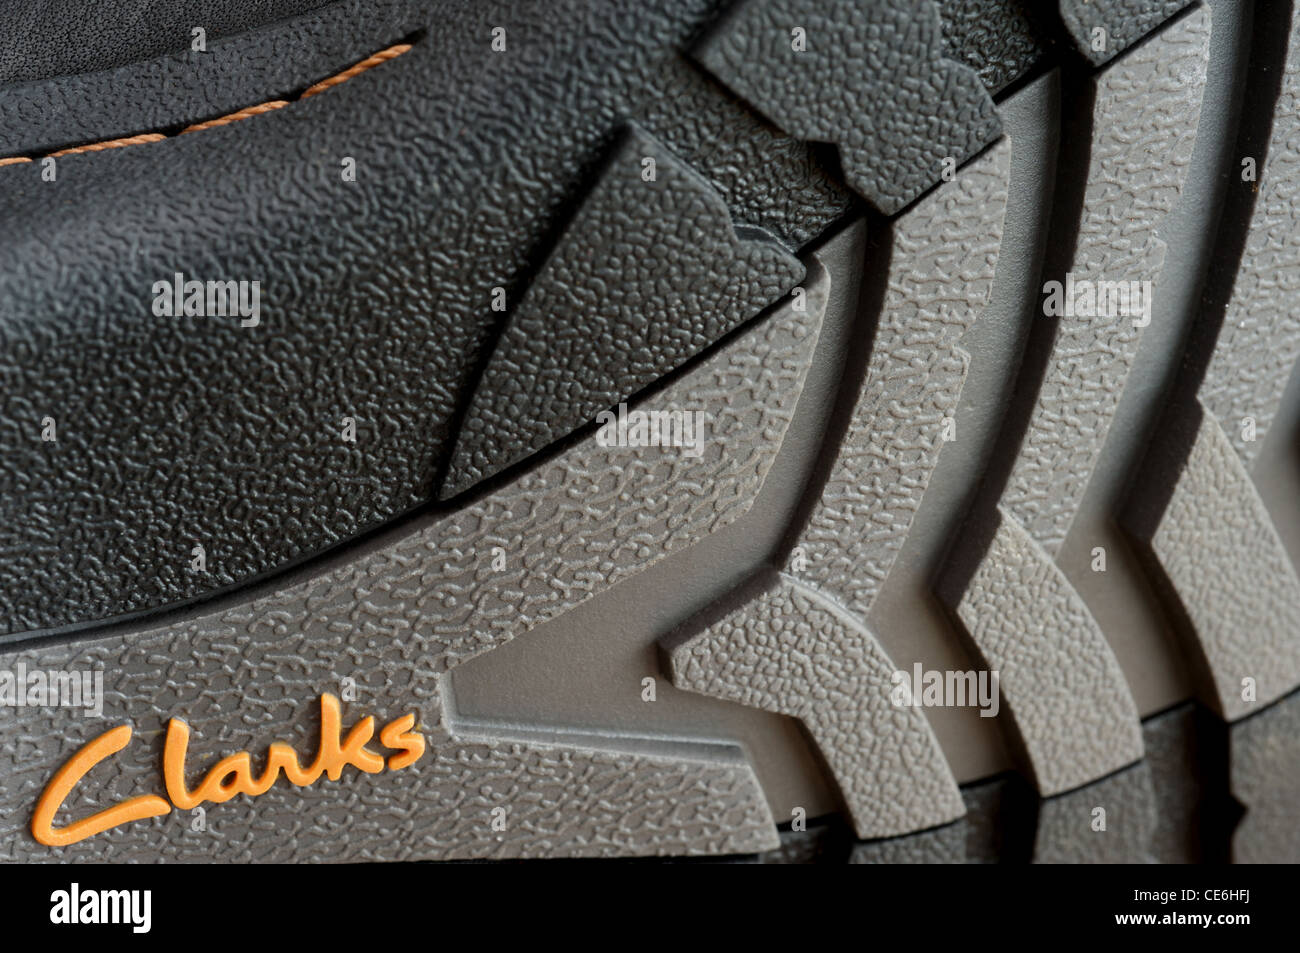 Clarks shoes - Stock Image